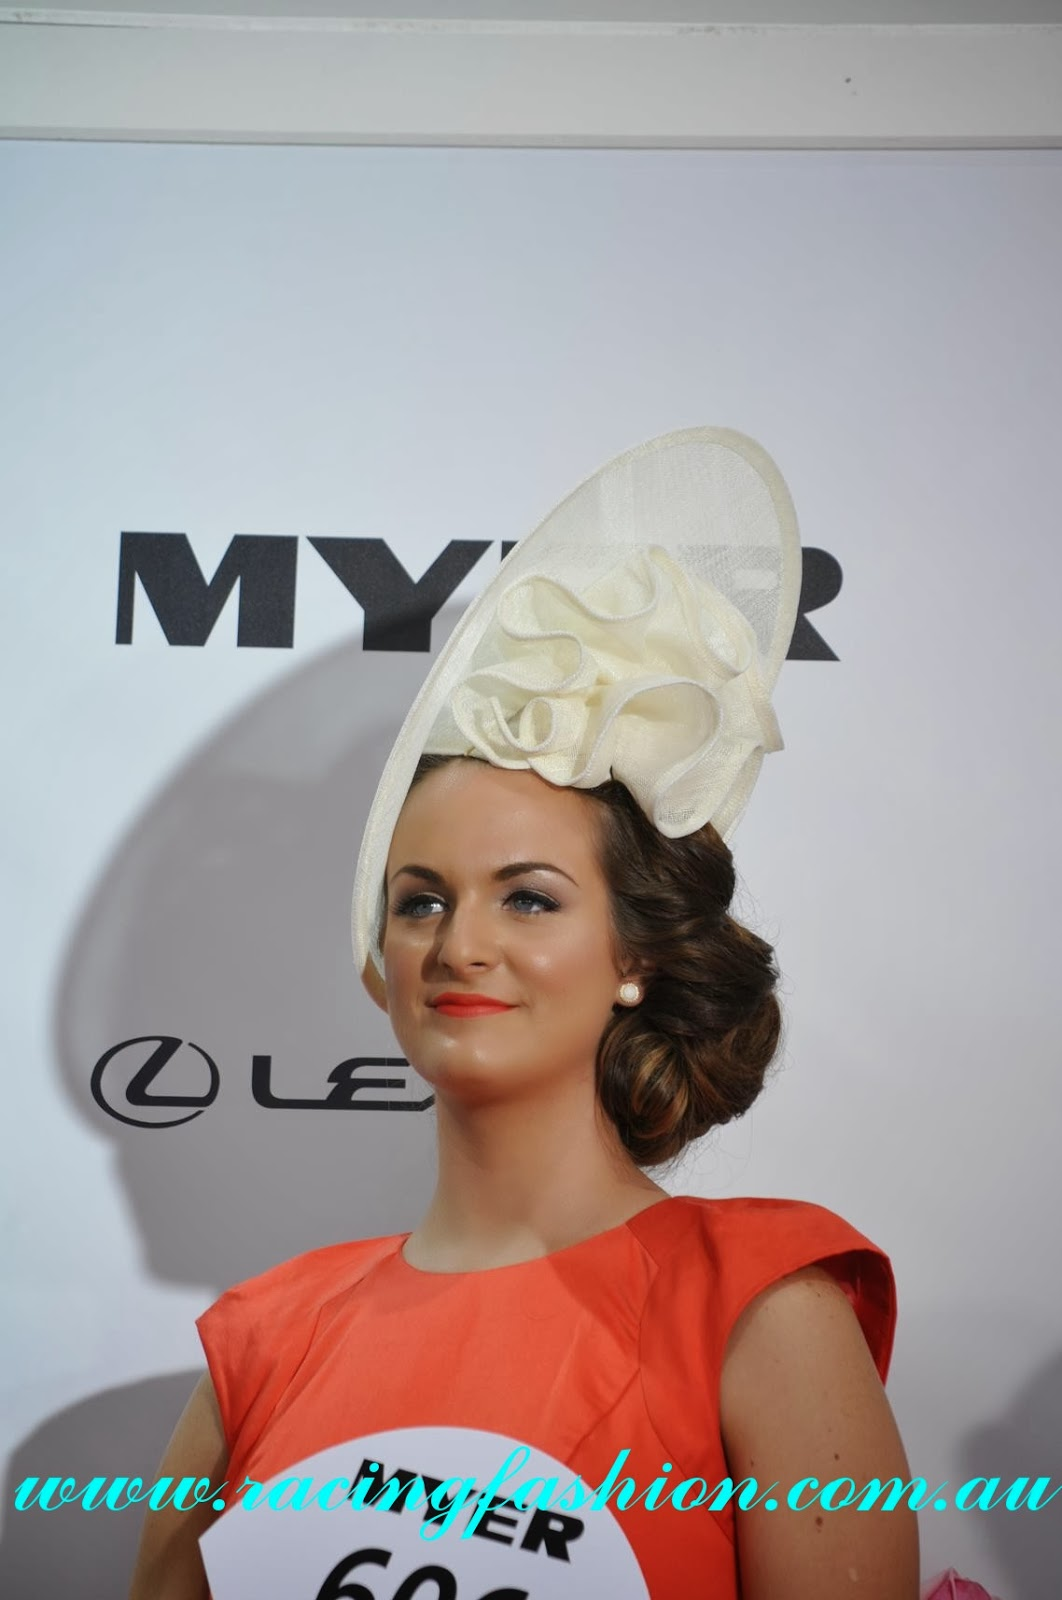 Melbourne Cup 2018 Fashion Tips, Dresses Hats - Punters